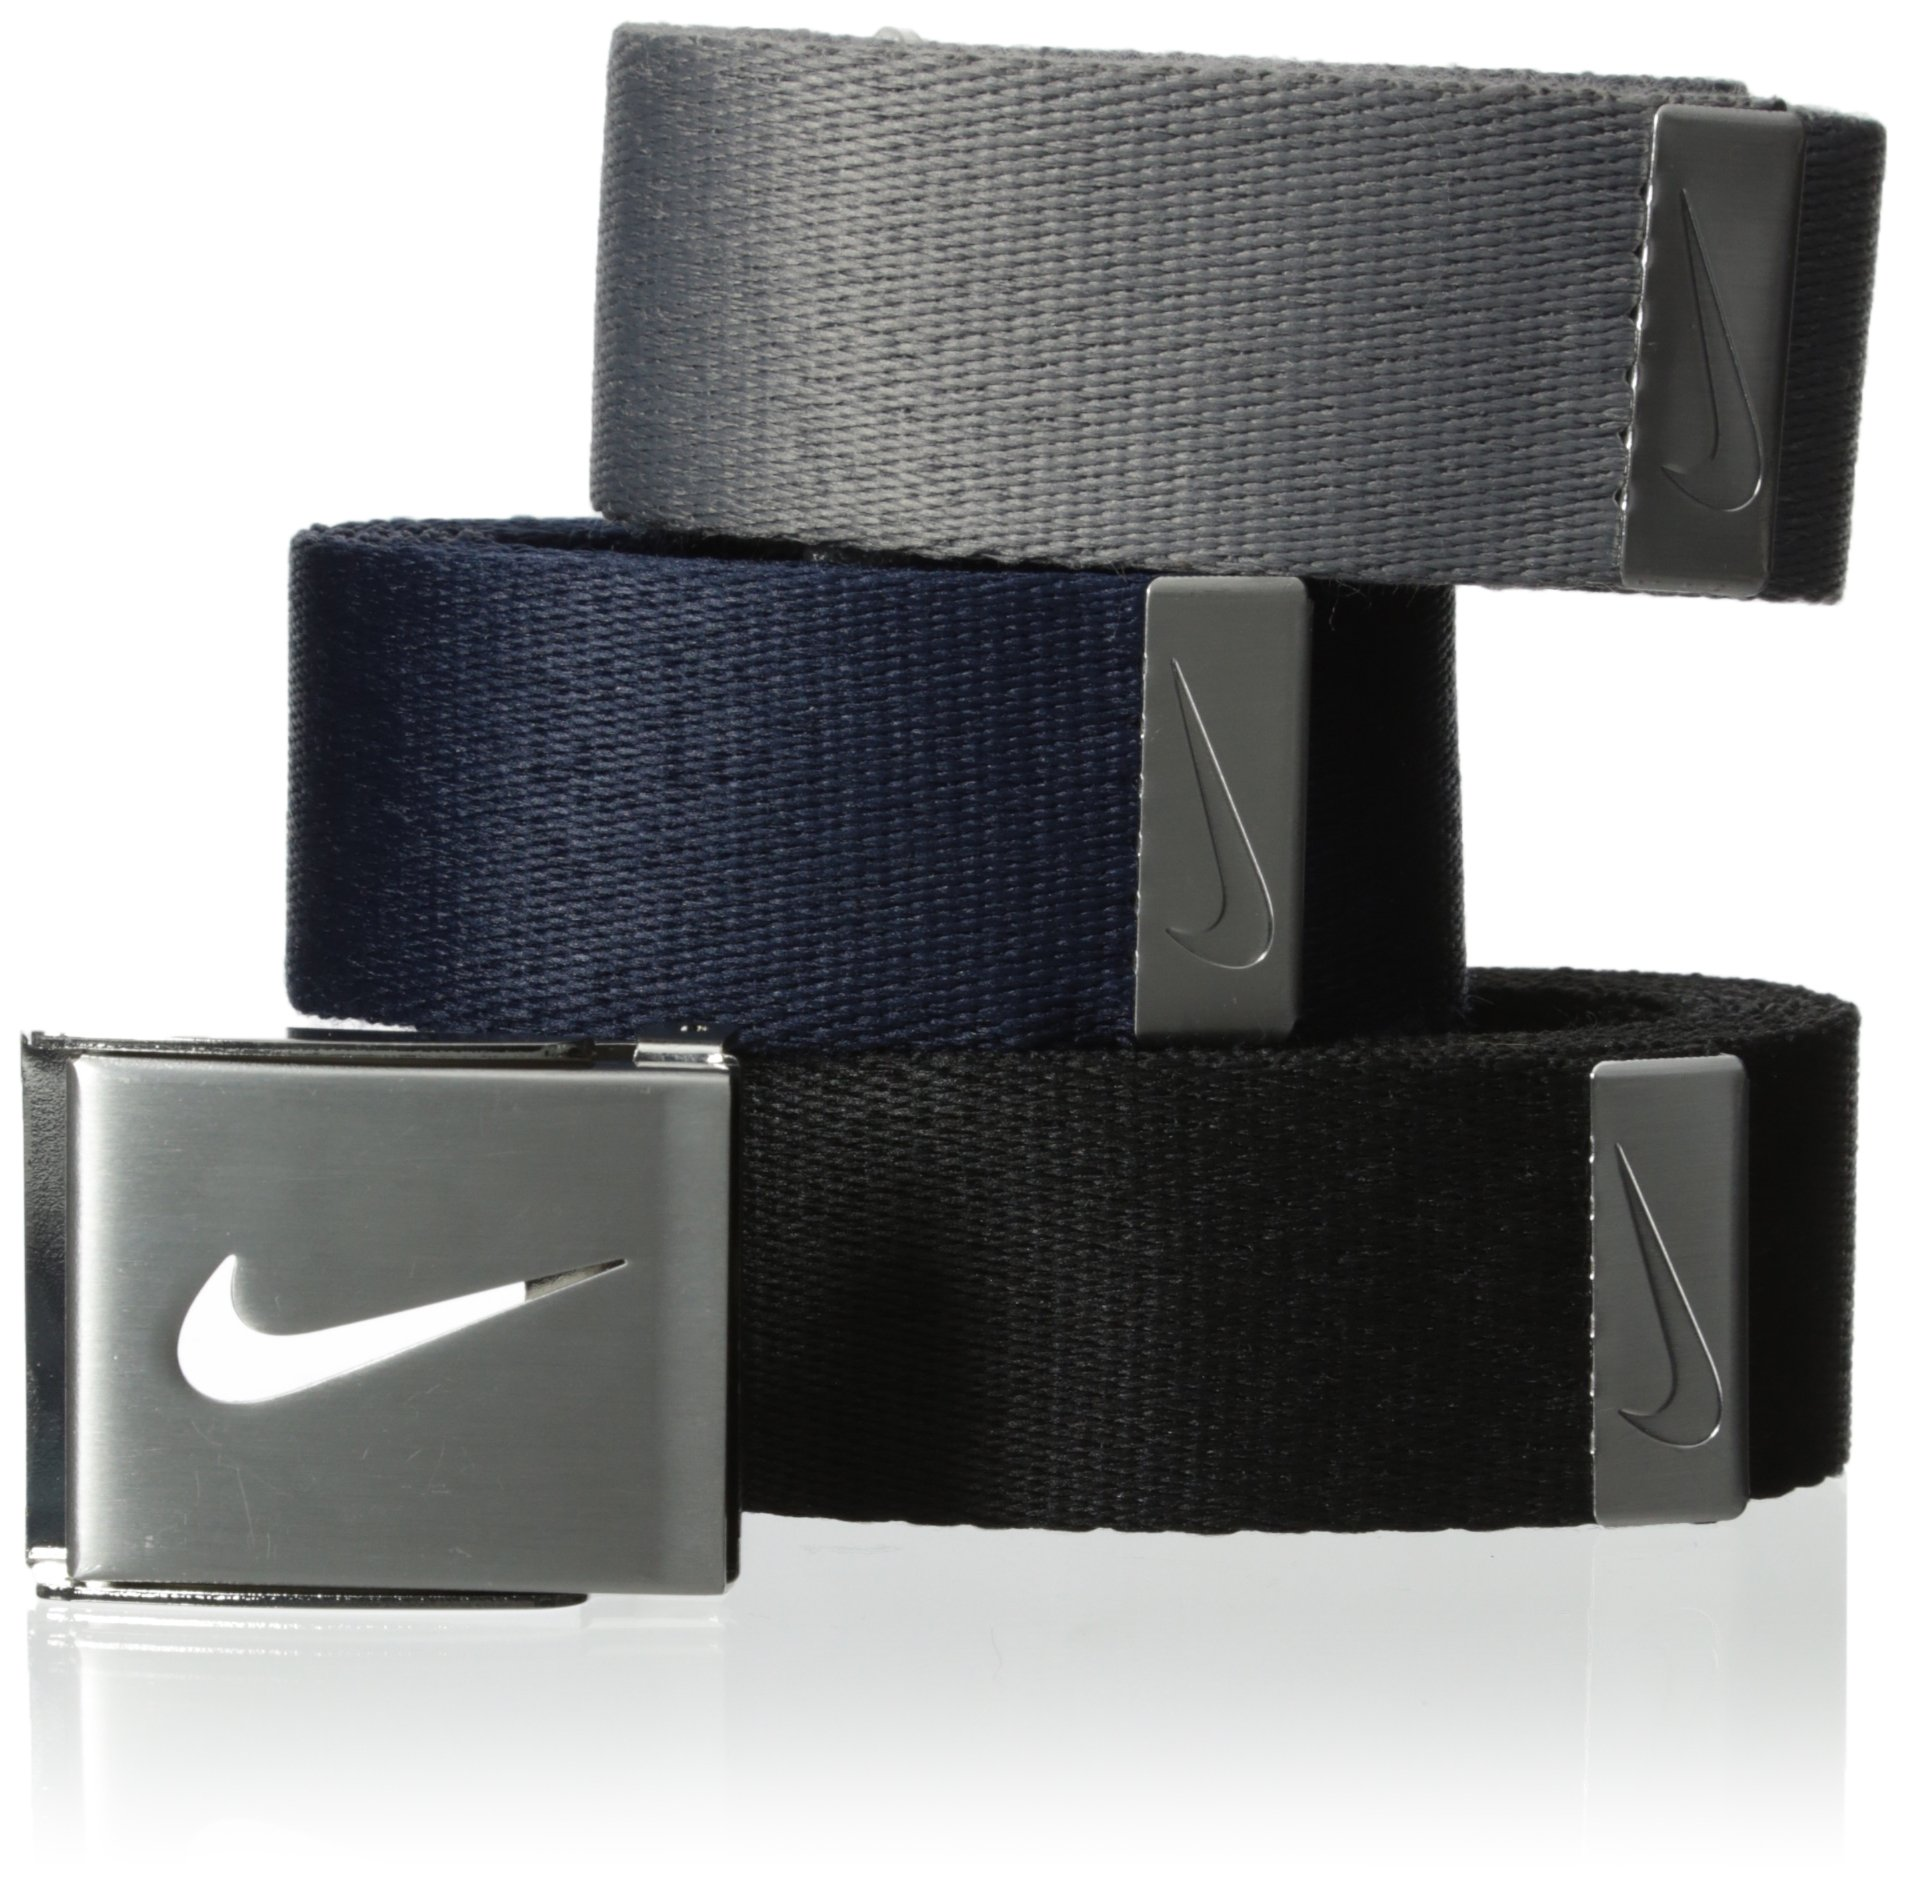 Nike Men's 3-In-1 Web Pack, Black/Grey/Navy, One Size